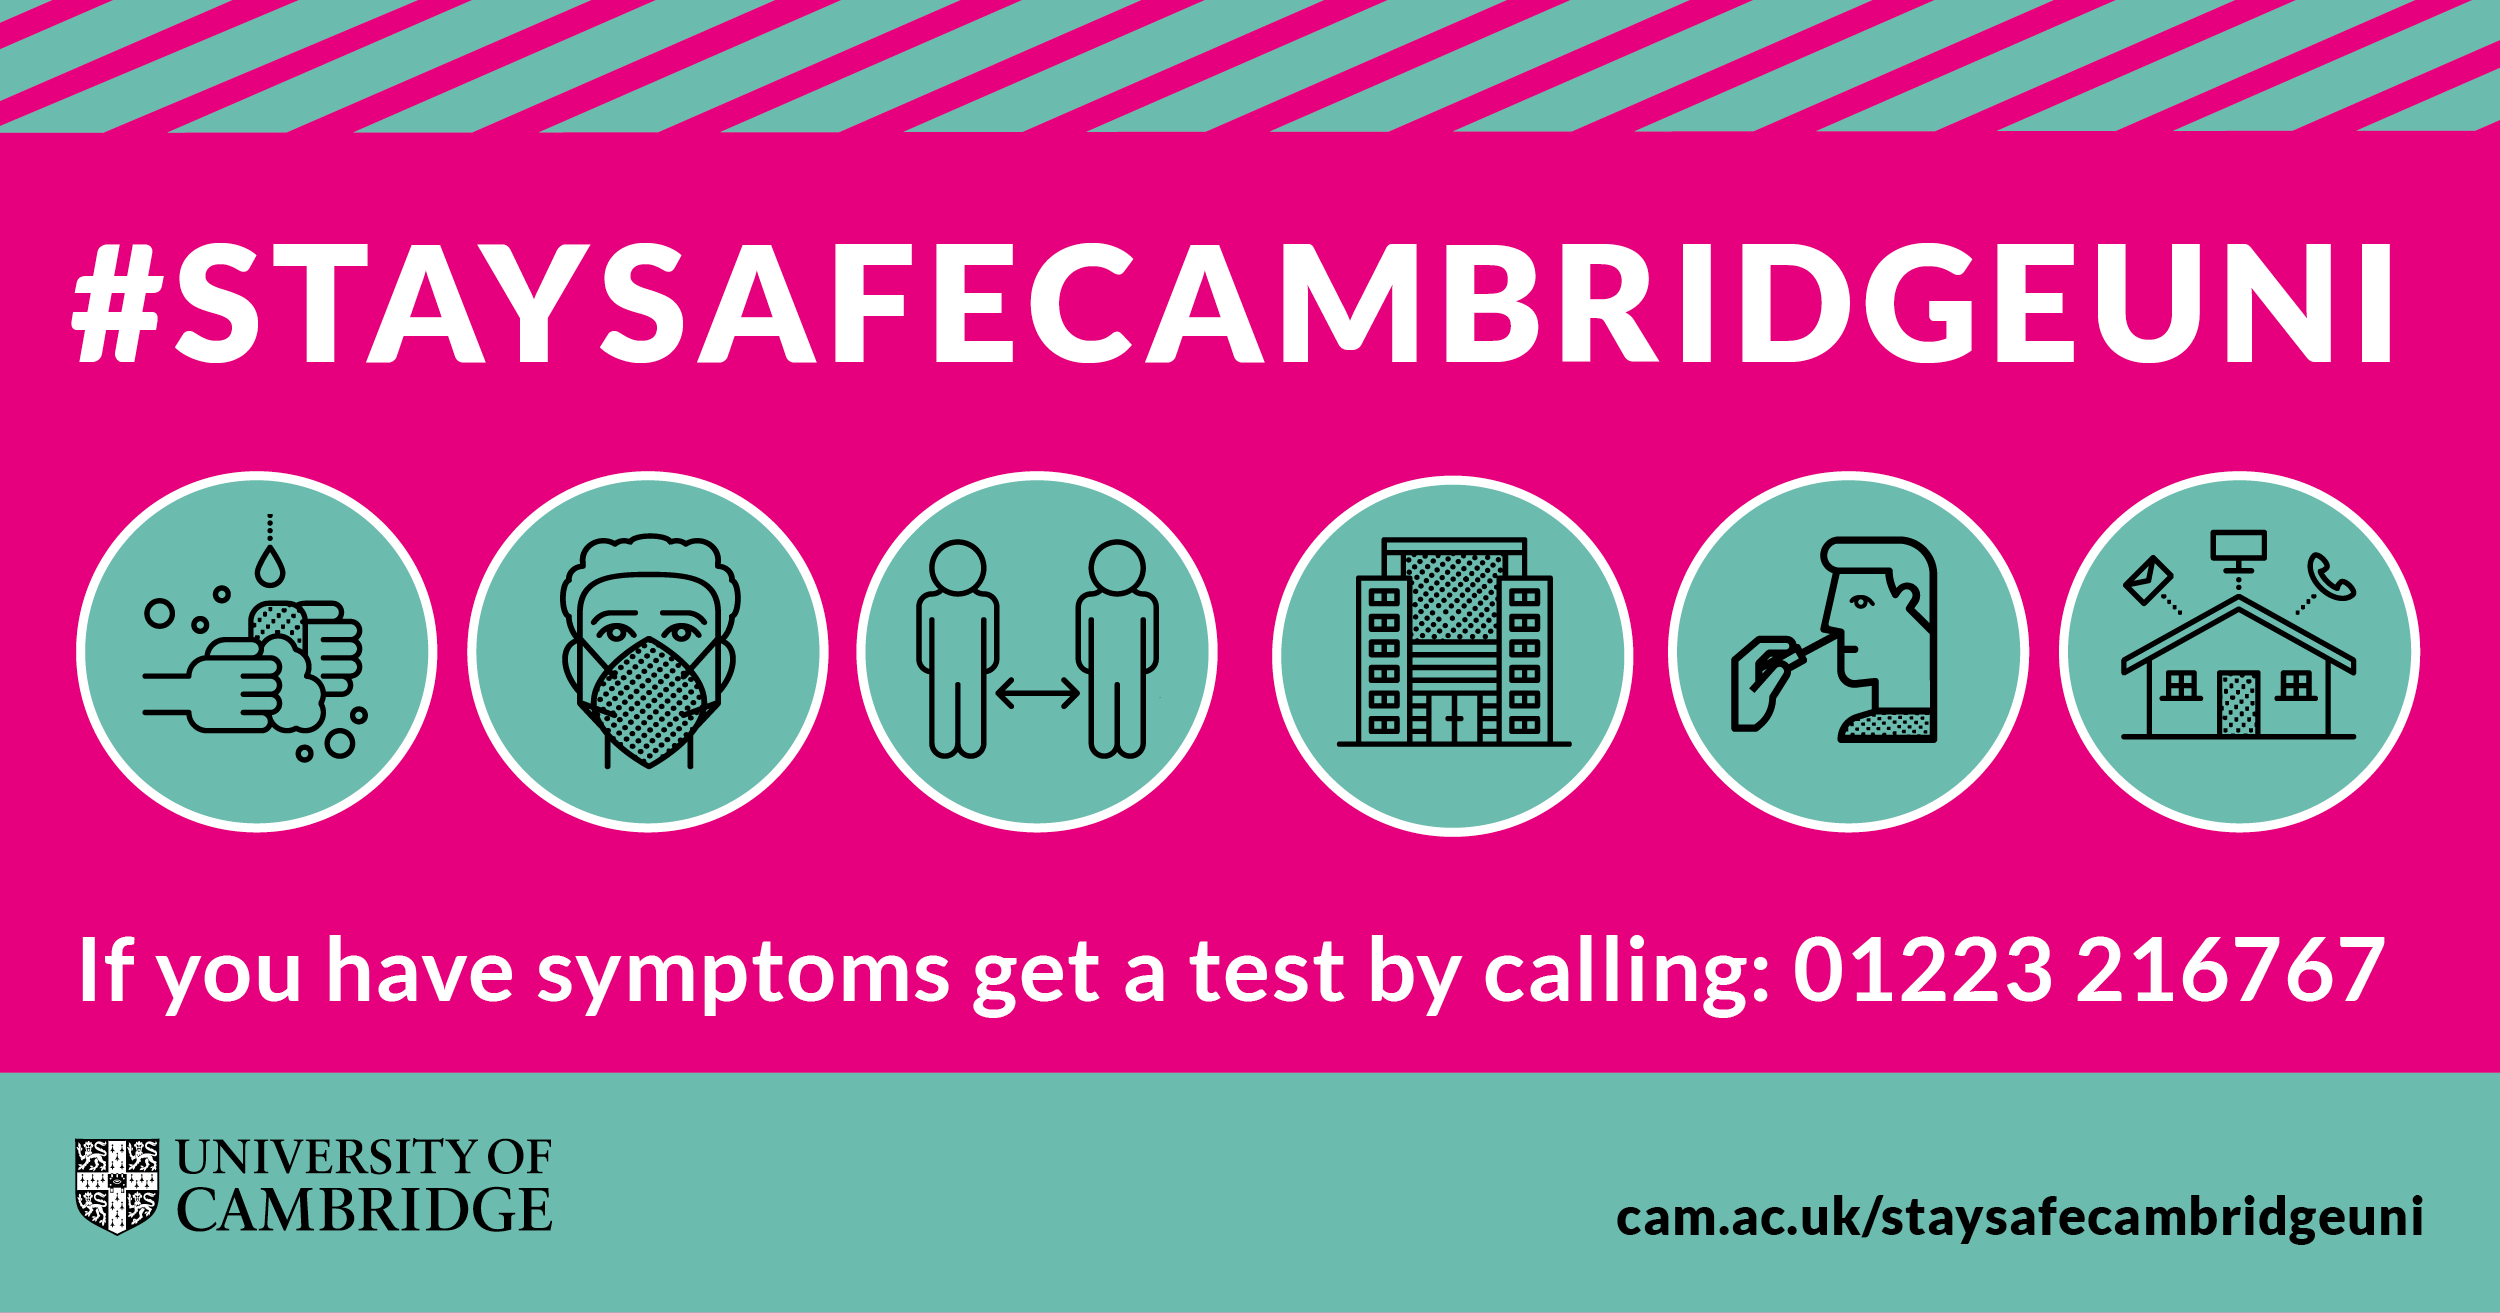 Image of 'Stay Safe Cambridge Uni' public health campaign launched